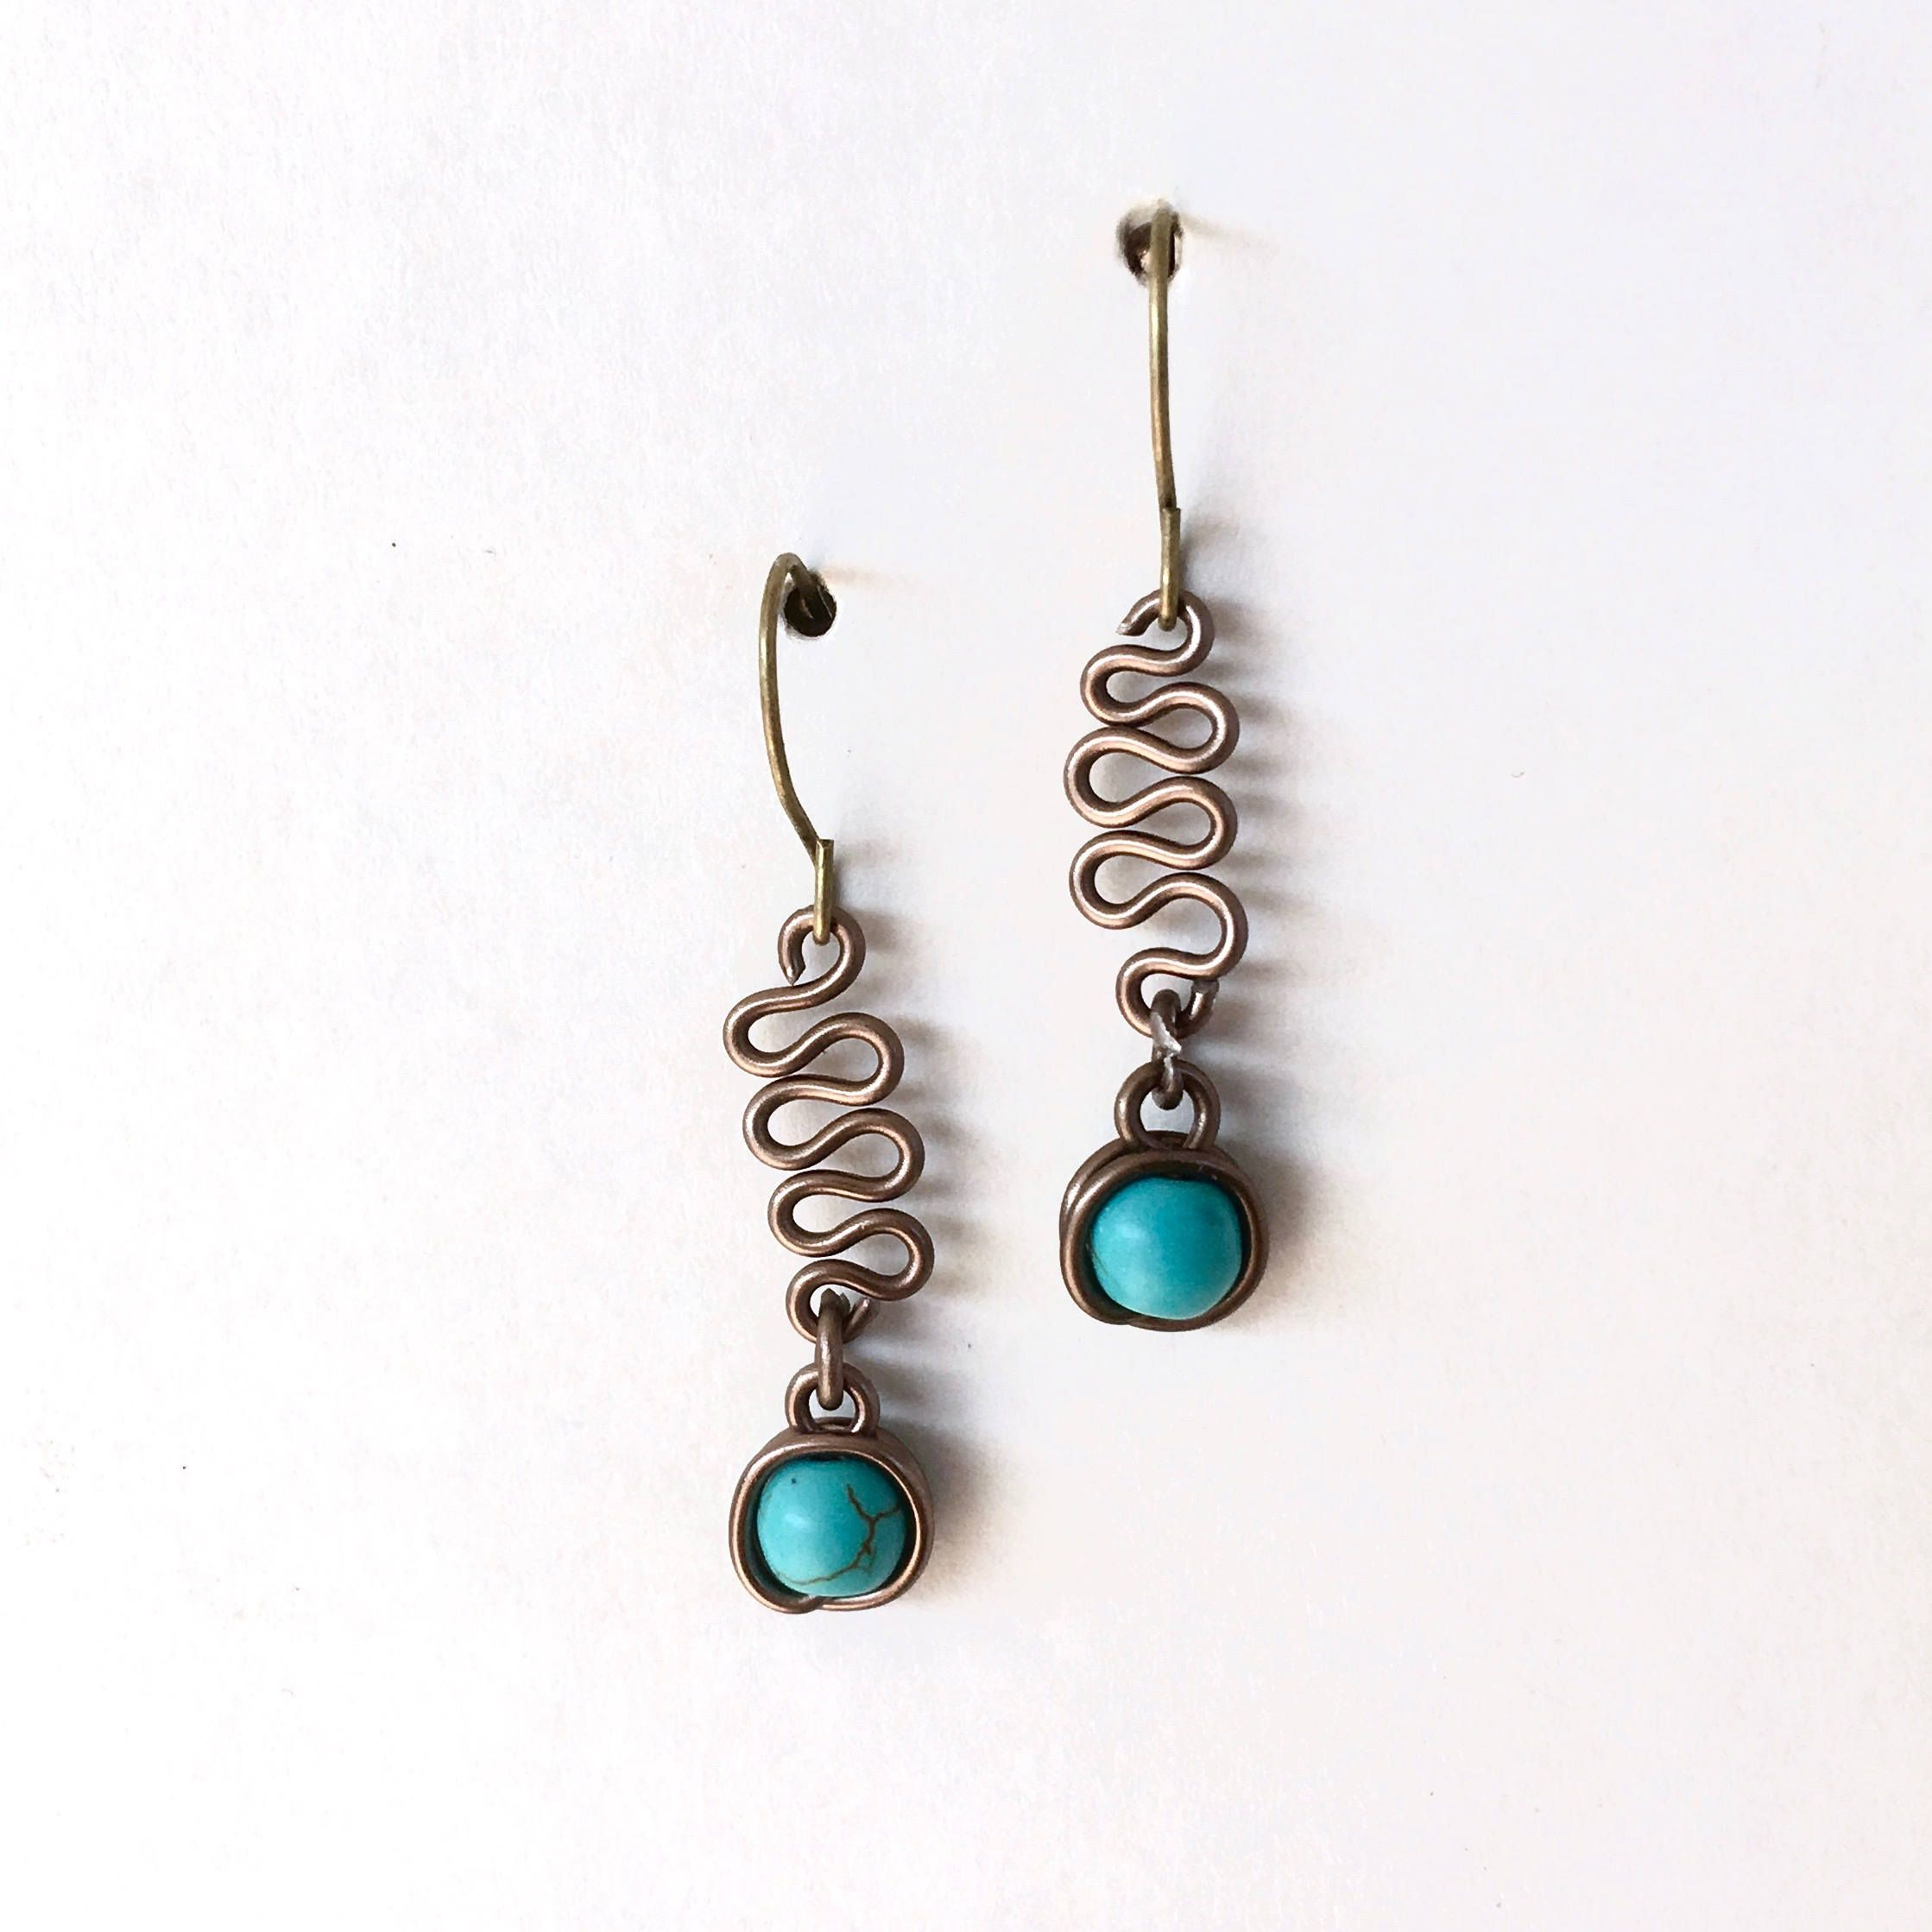 Serpentine and Turquoise Earrings | Jewelry ideas, Diy earrings ...